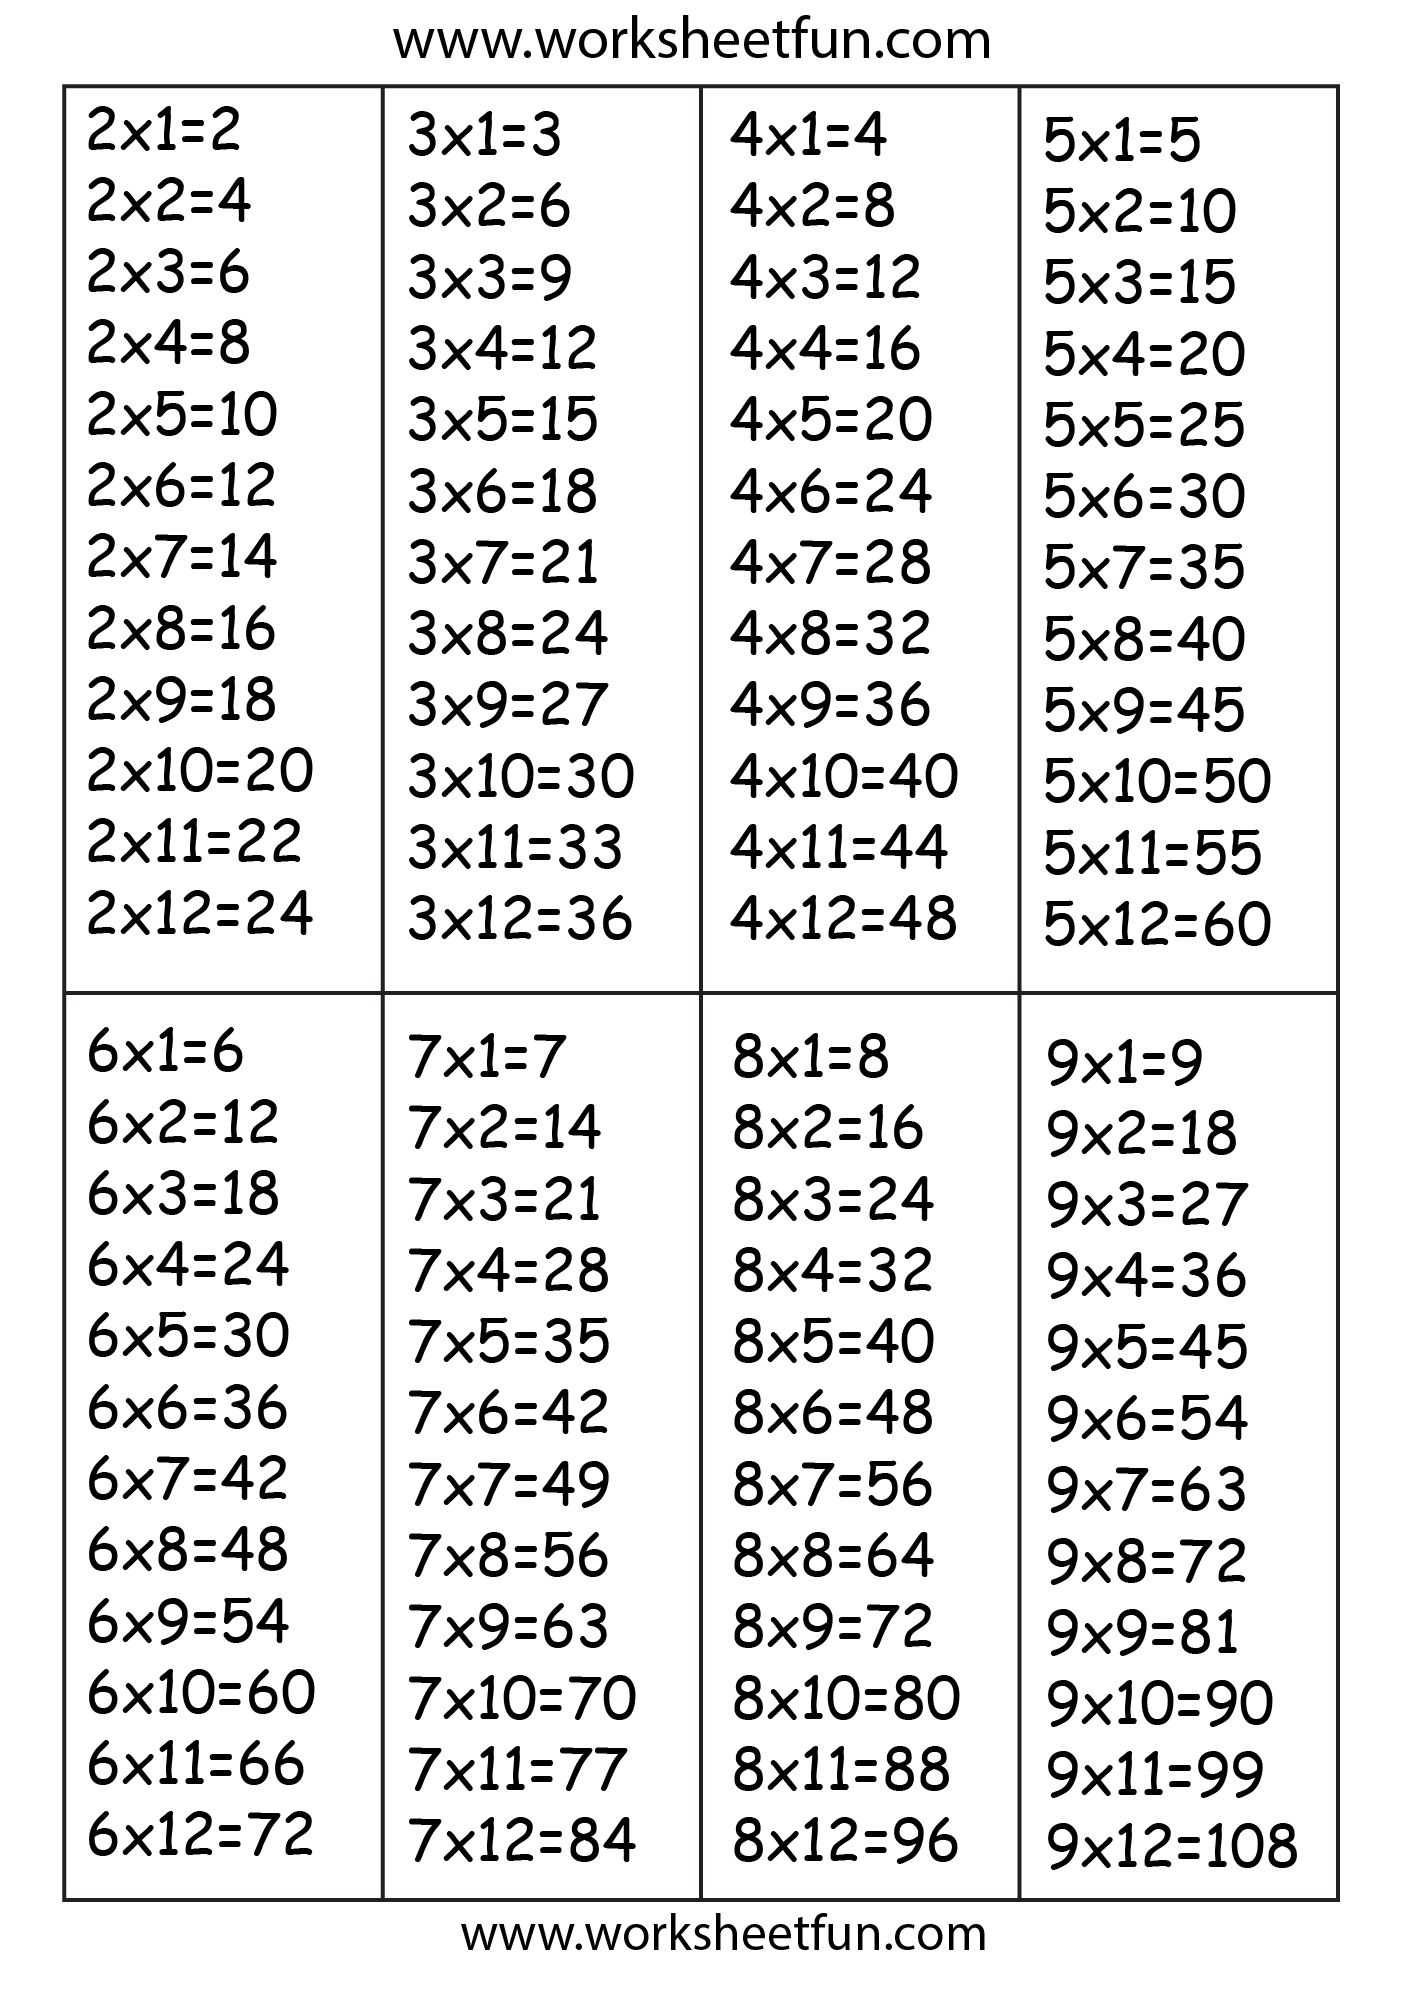 Times Table Chart – 2, 3, 4, 5, 6, 7, 8 & 9 / Free Printable pertaining to Printable Multiplication Chart 1-9